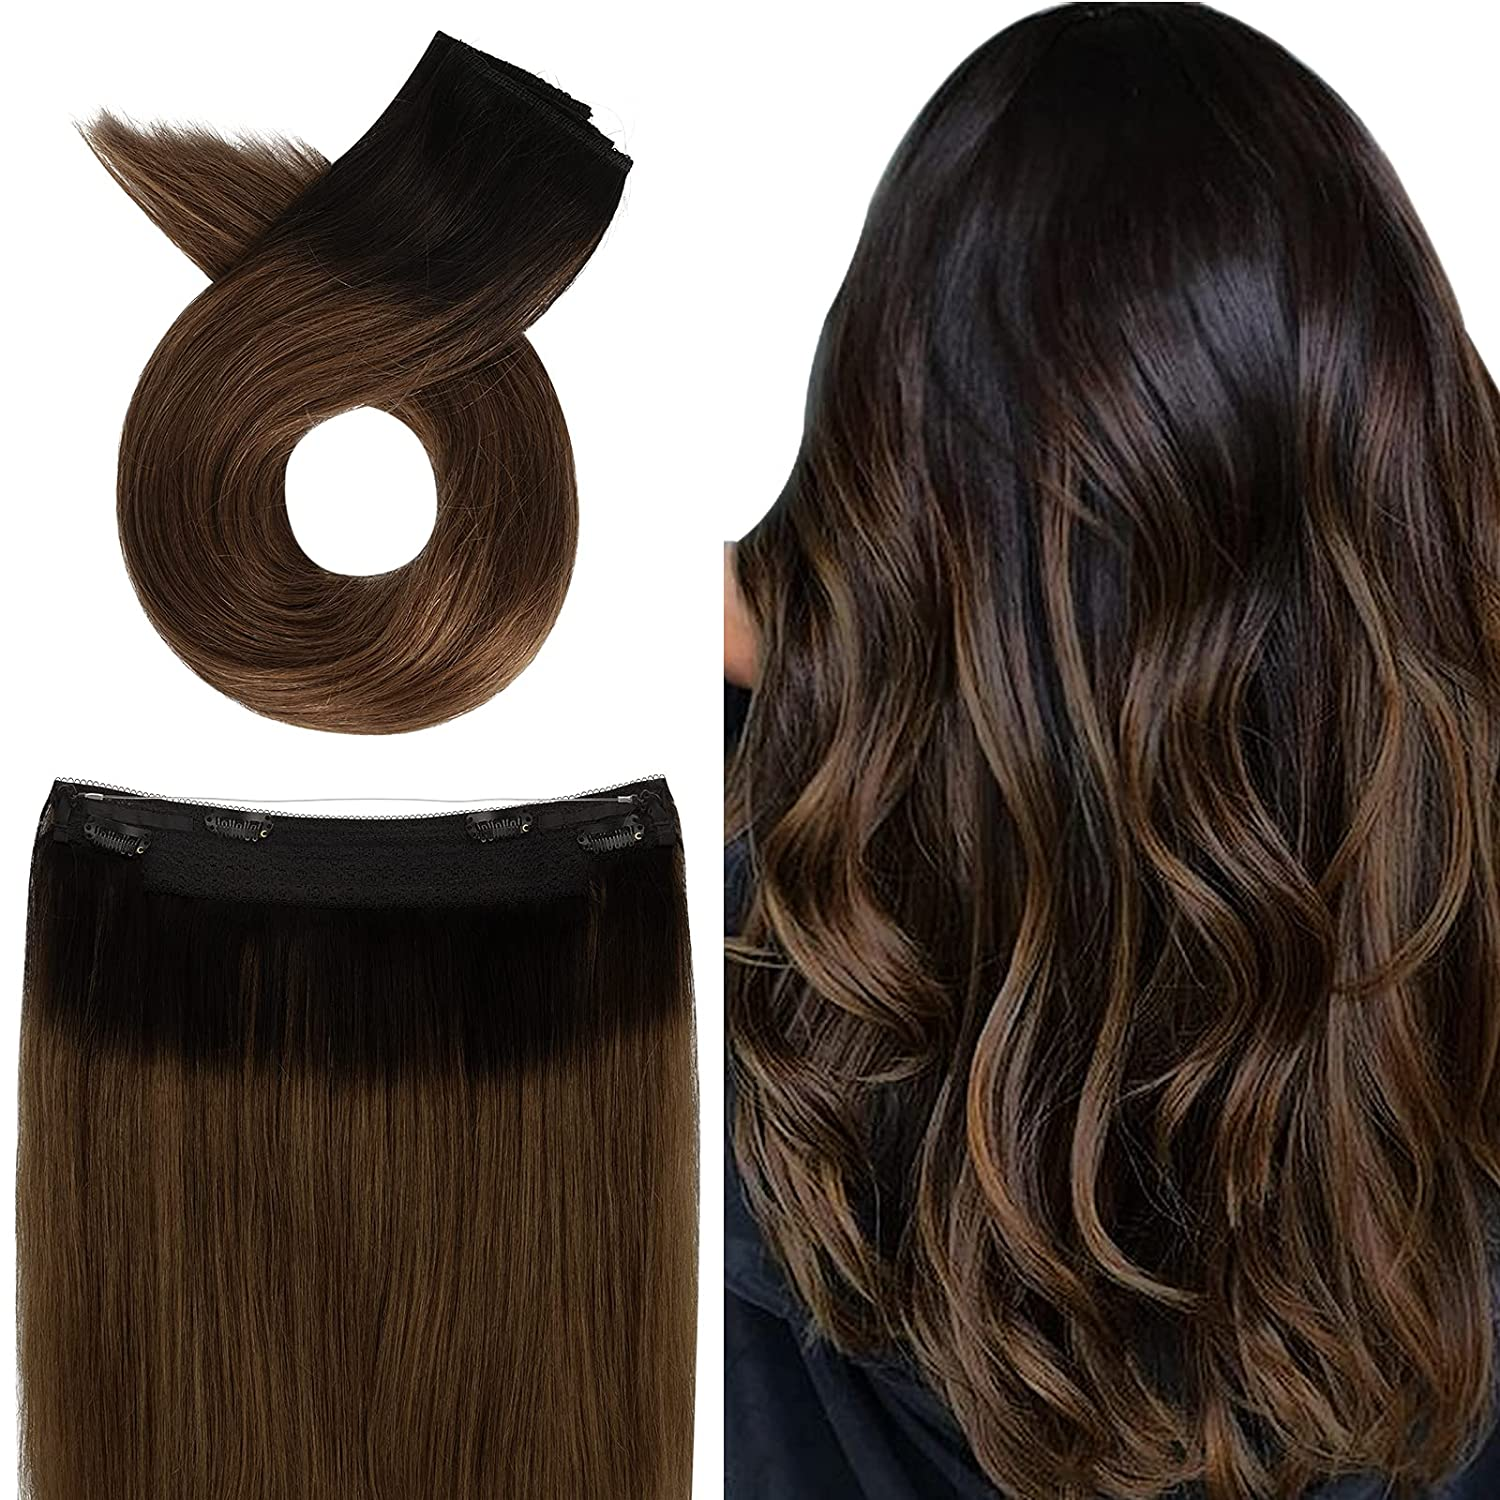 Halo Hair Super-cheap Extensions Human Real OmbreChestnutBrown Gifts